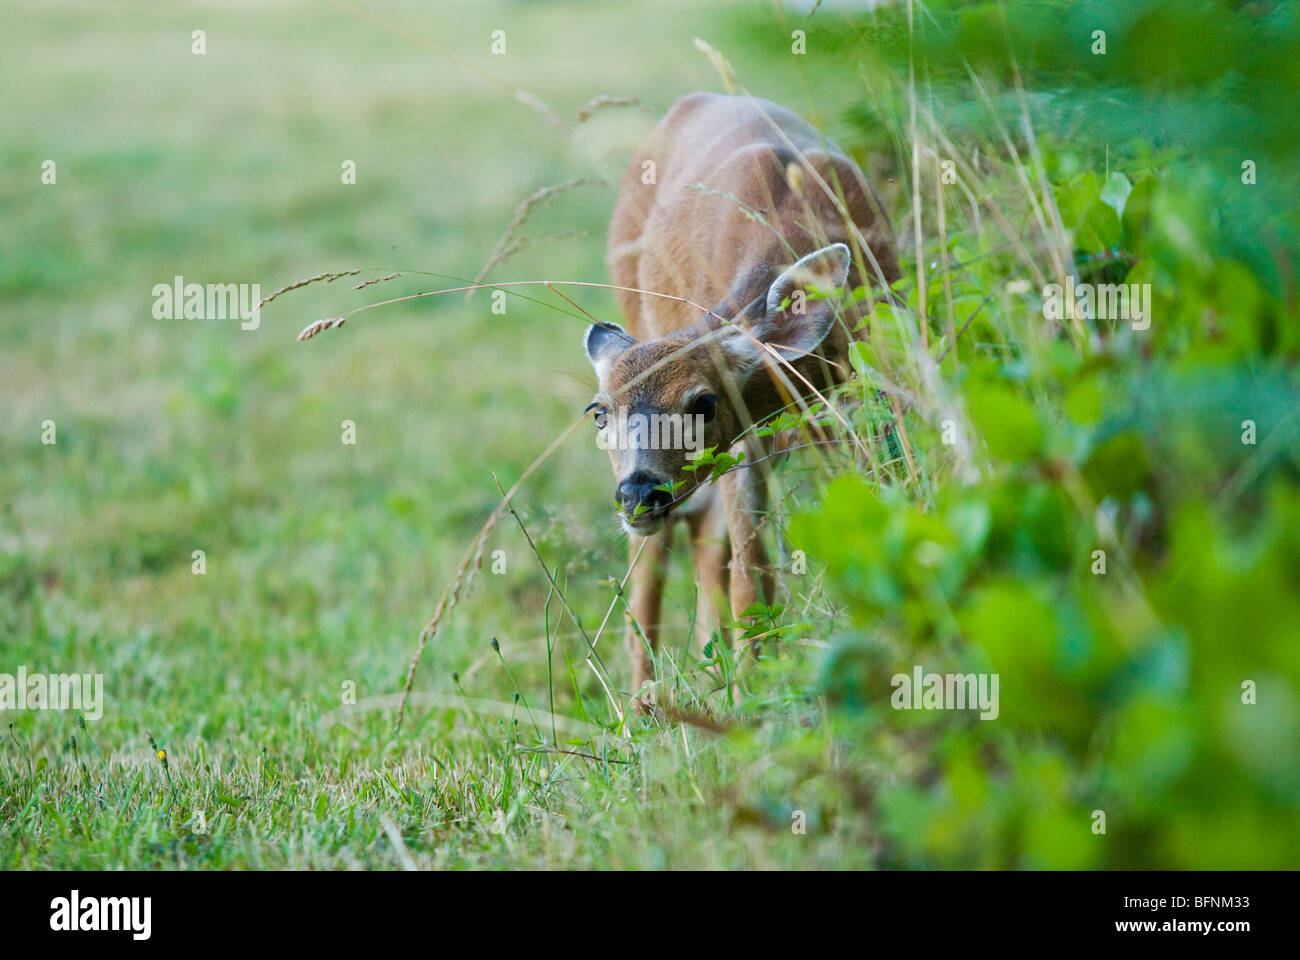 A fawn deer looking curiously through some grass. - Stock Image